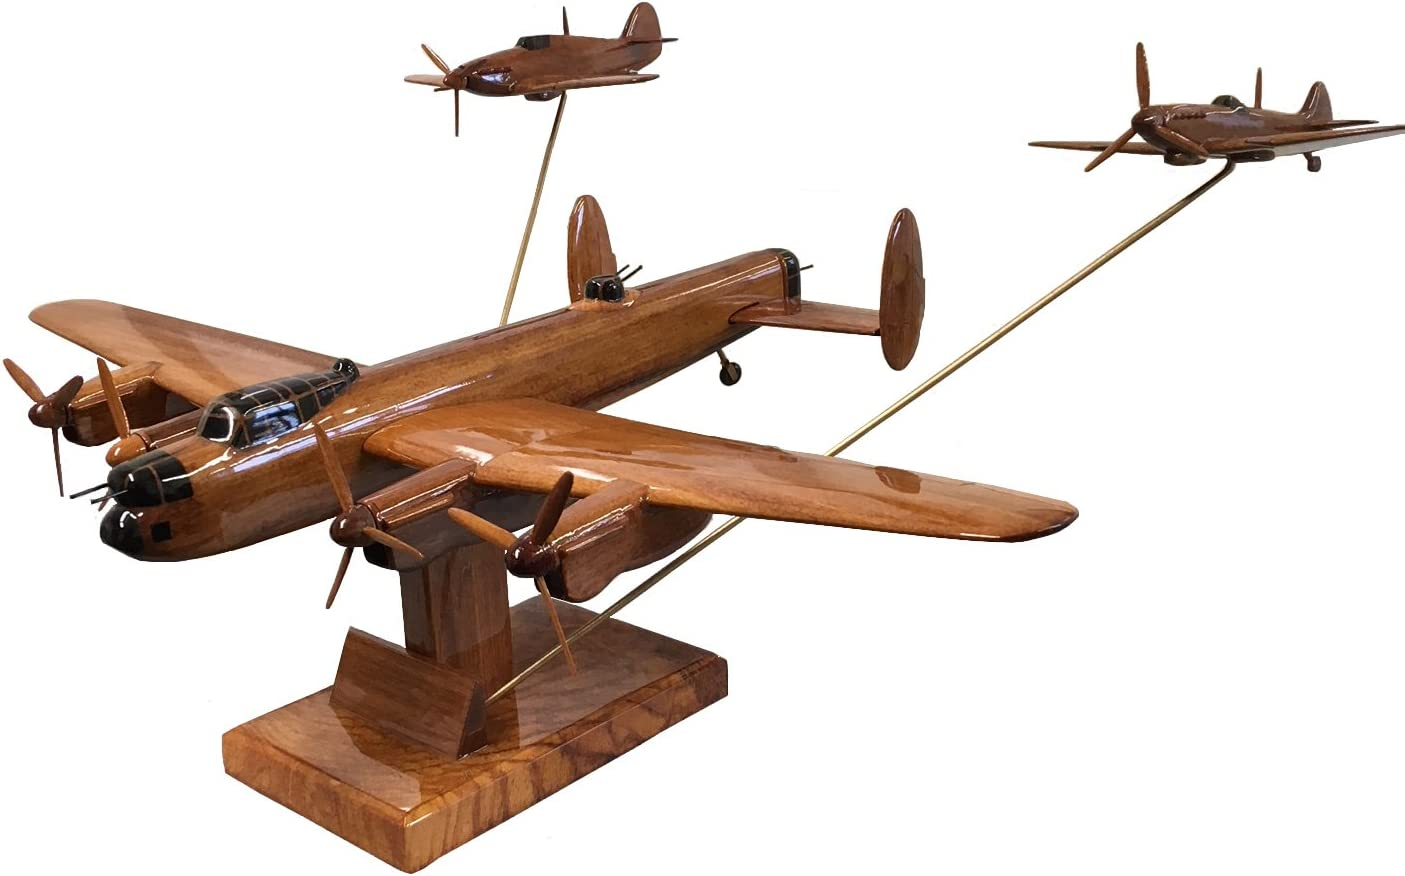 WW2 Triple Set Lancaster,Spitfire,Hurricane - British Military Aircraft - Executive Wooden Desktop Model (Mahogany)